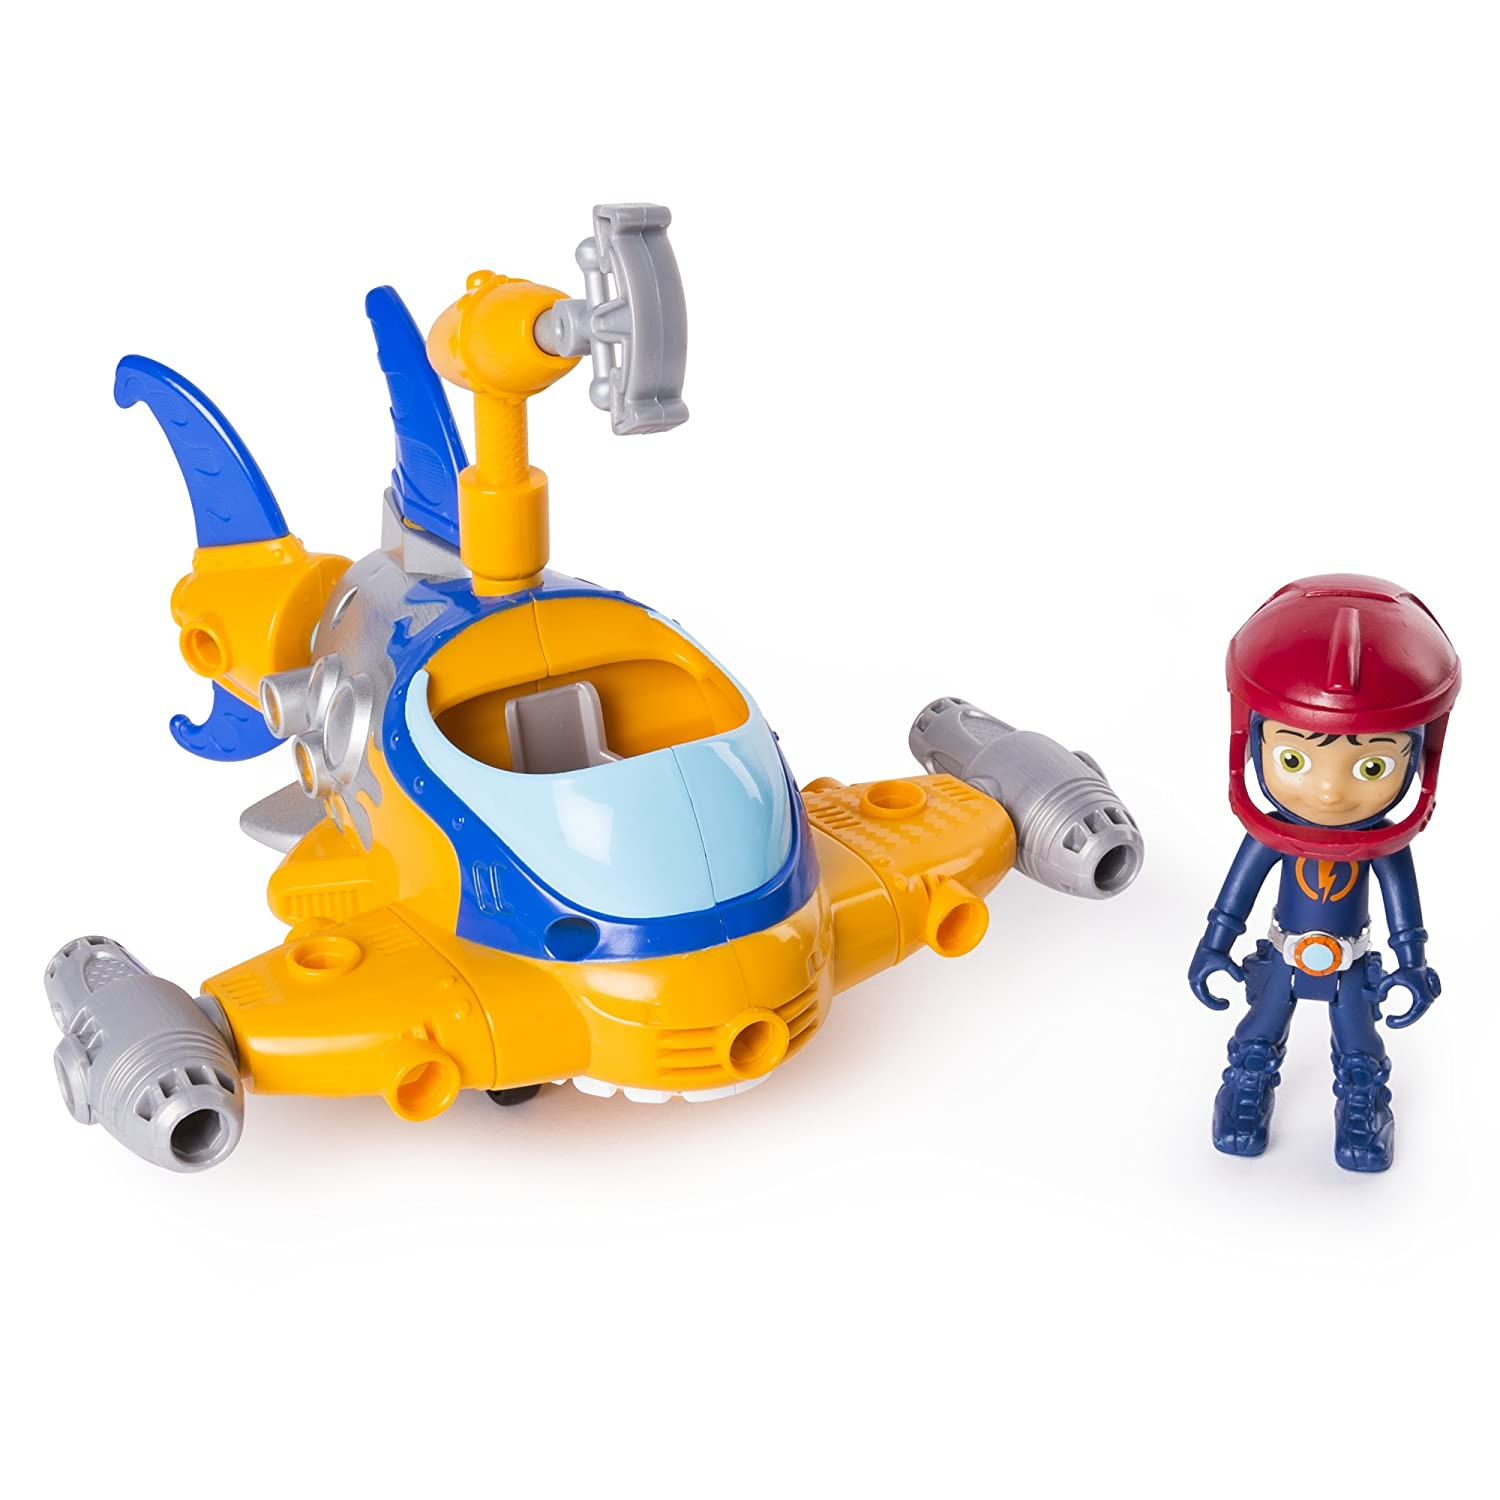 Rusty Rivets 6046696 Basic Vehicle Rivet Shark, Multi-Colour Spin Master 20101269-6046696